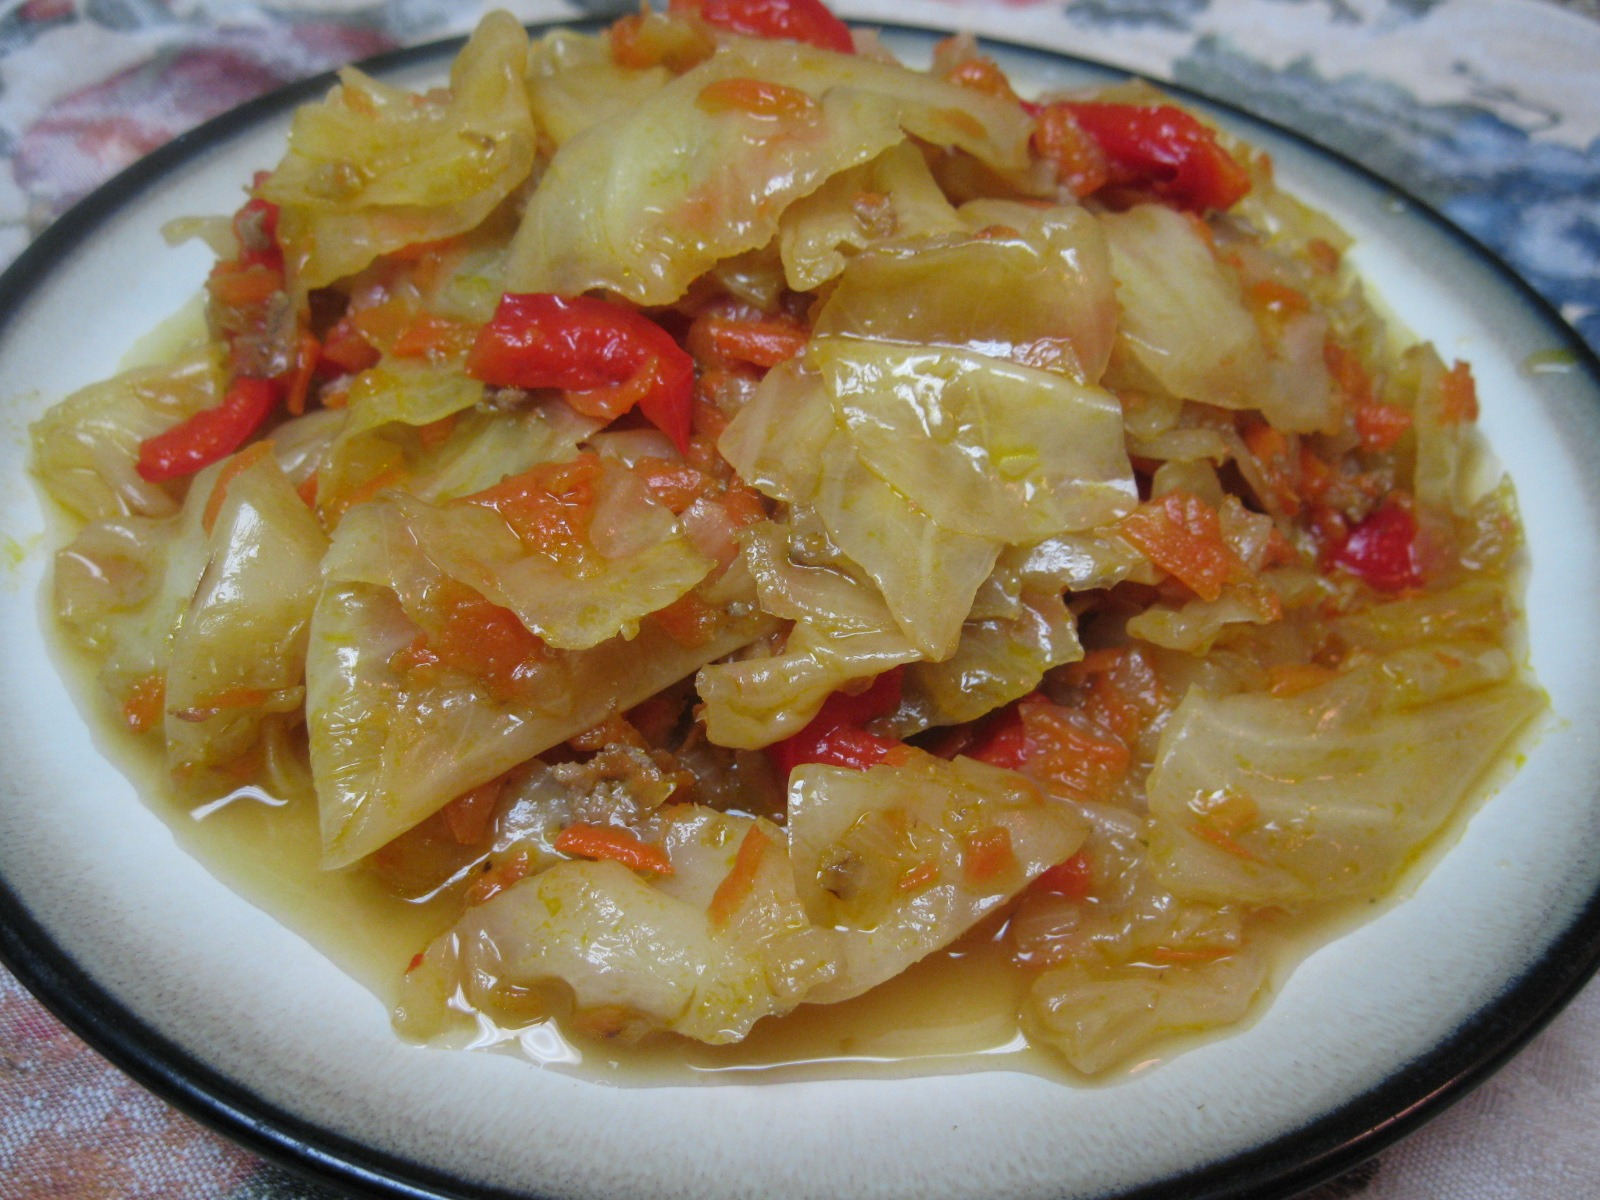 Russian Sautéed And Boiled Cabbage (vegetarian style)